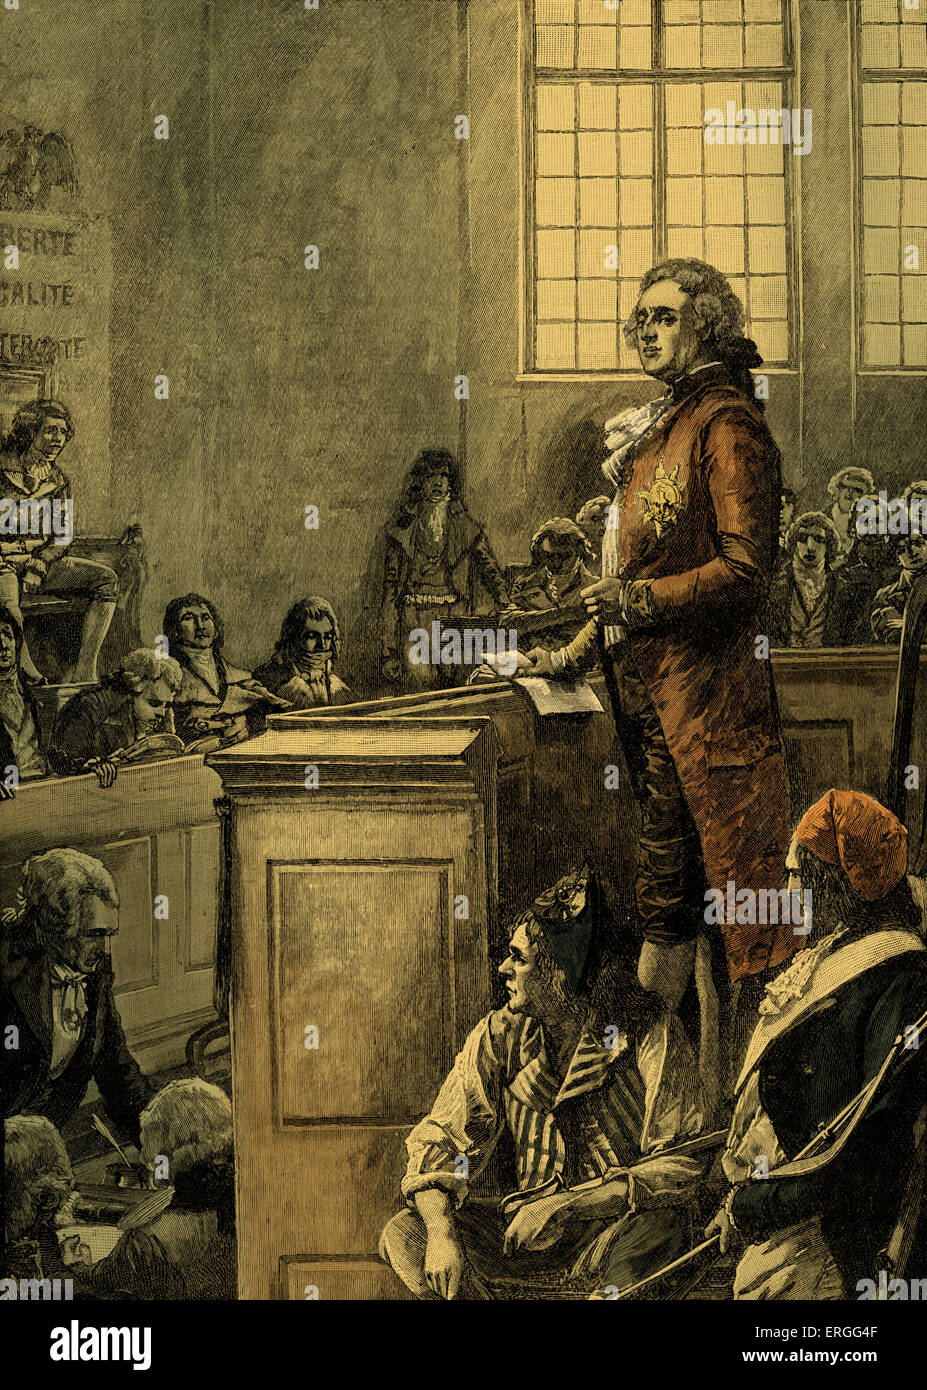 Trial of Louis XVI, King of France, 1793. Found guilty of conspiracy against the liberty and safety of the State - Stock Image